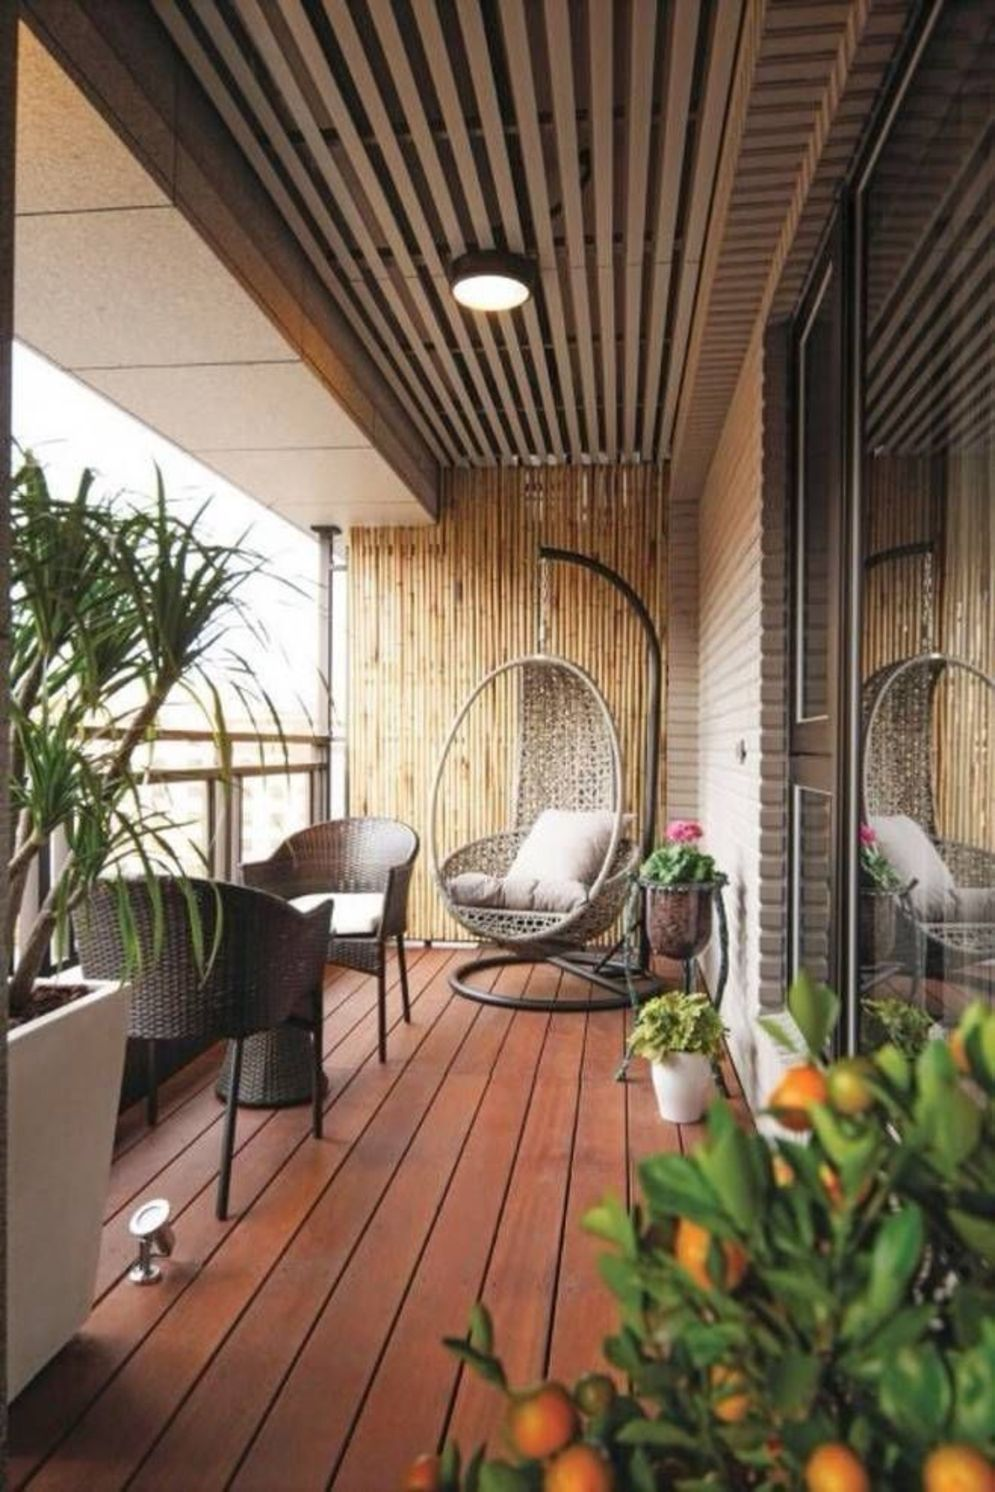 Brilliant apartment balcony ideas converted into cozy living space Image 6